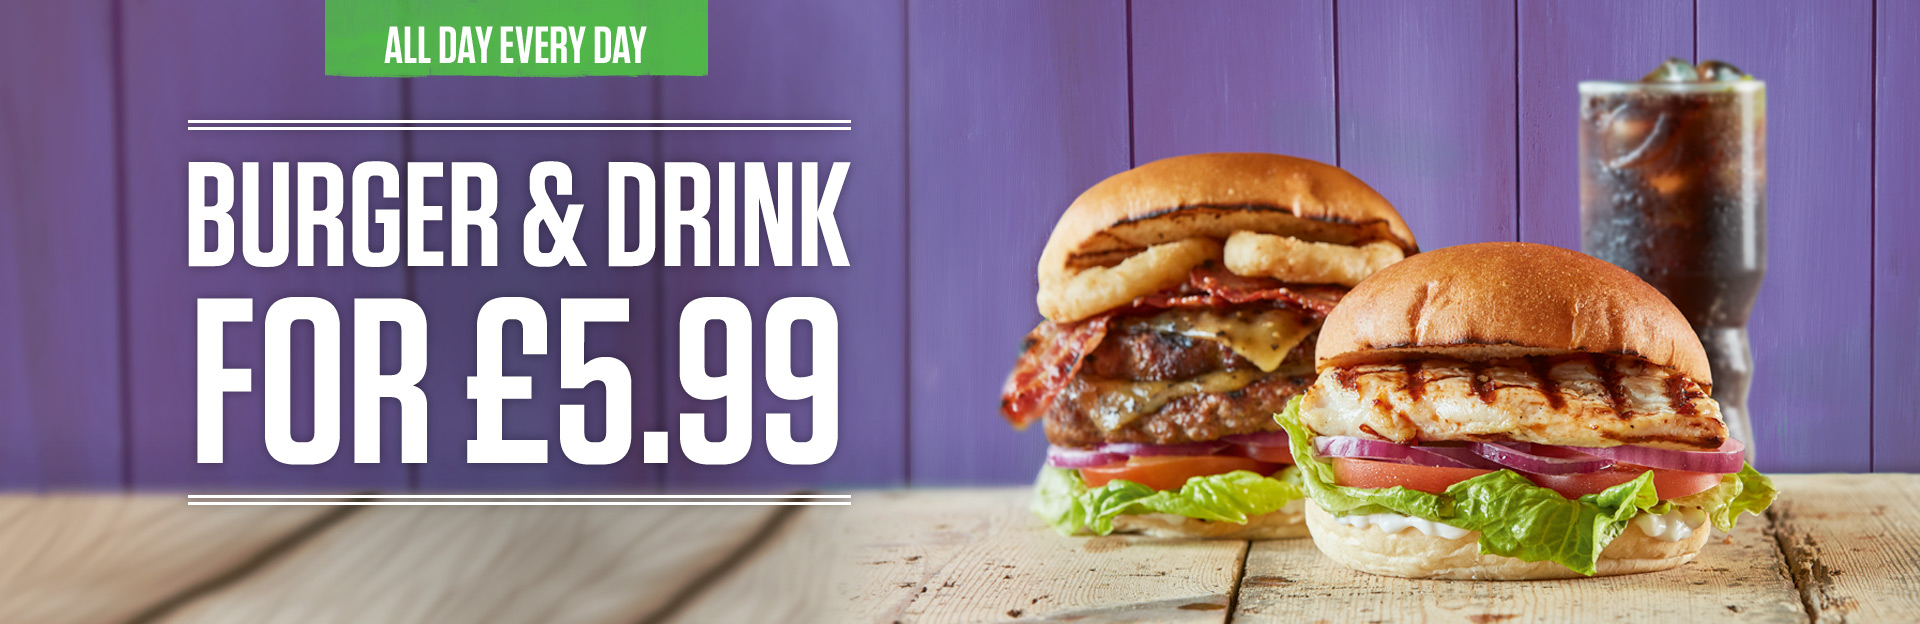 Burger and Drink Deal at The General Roy